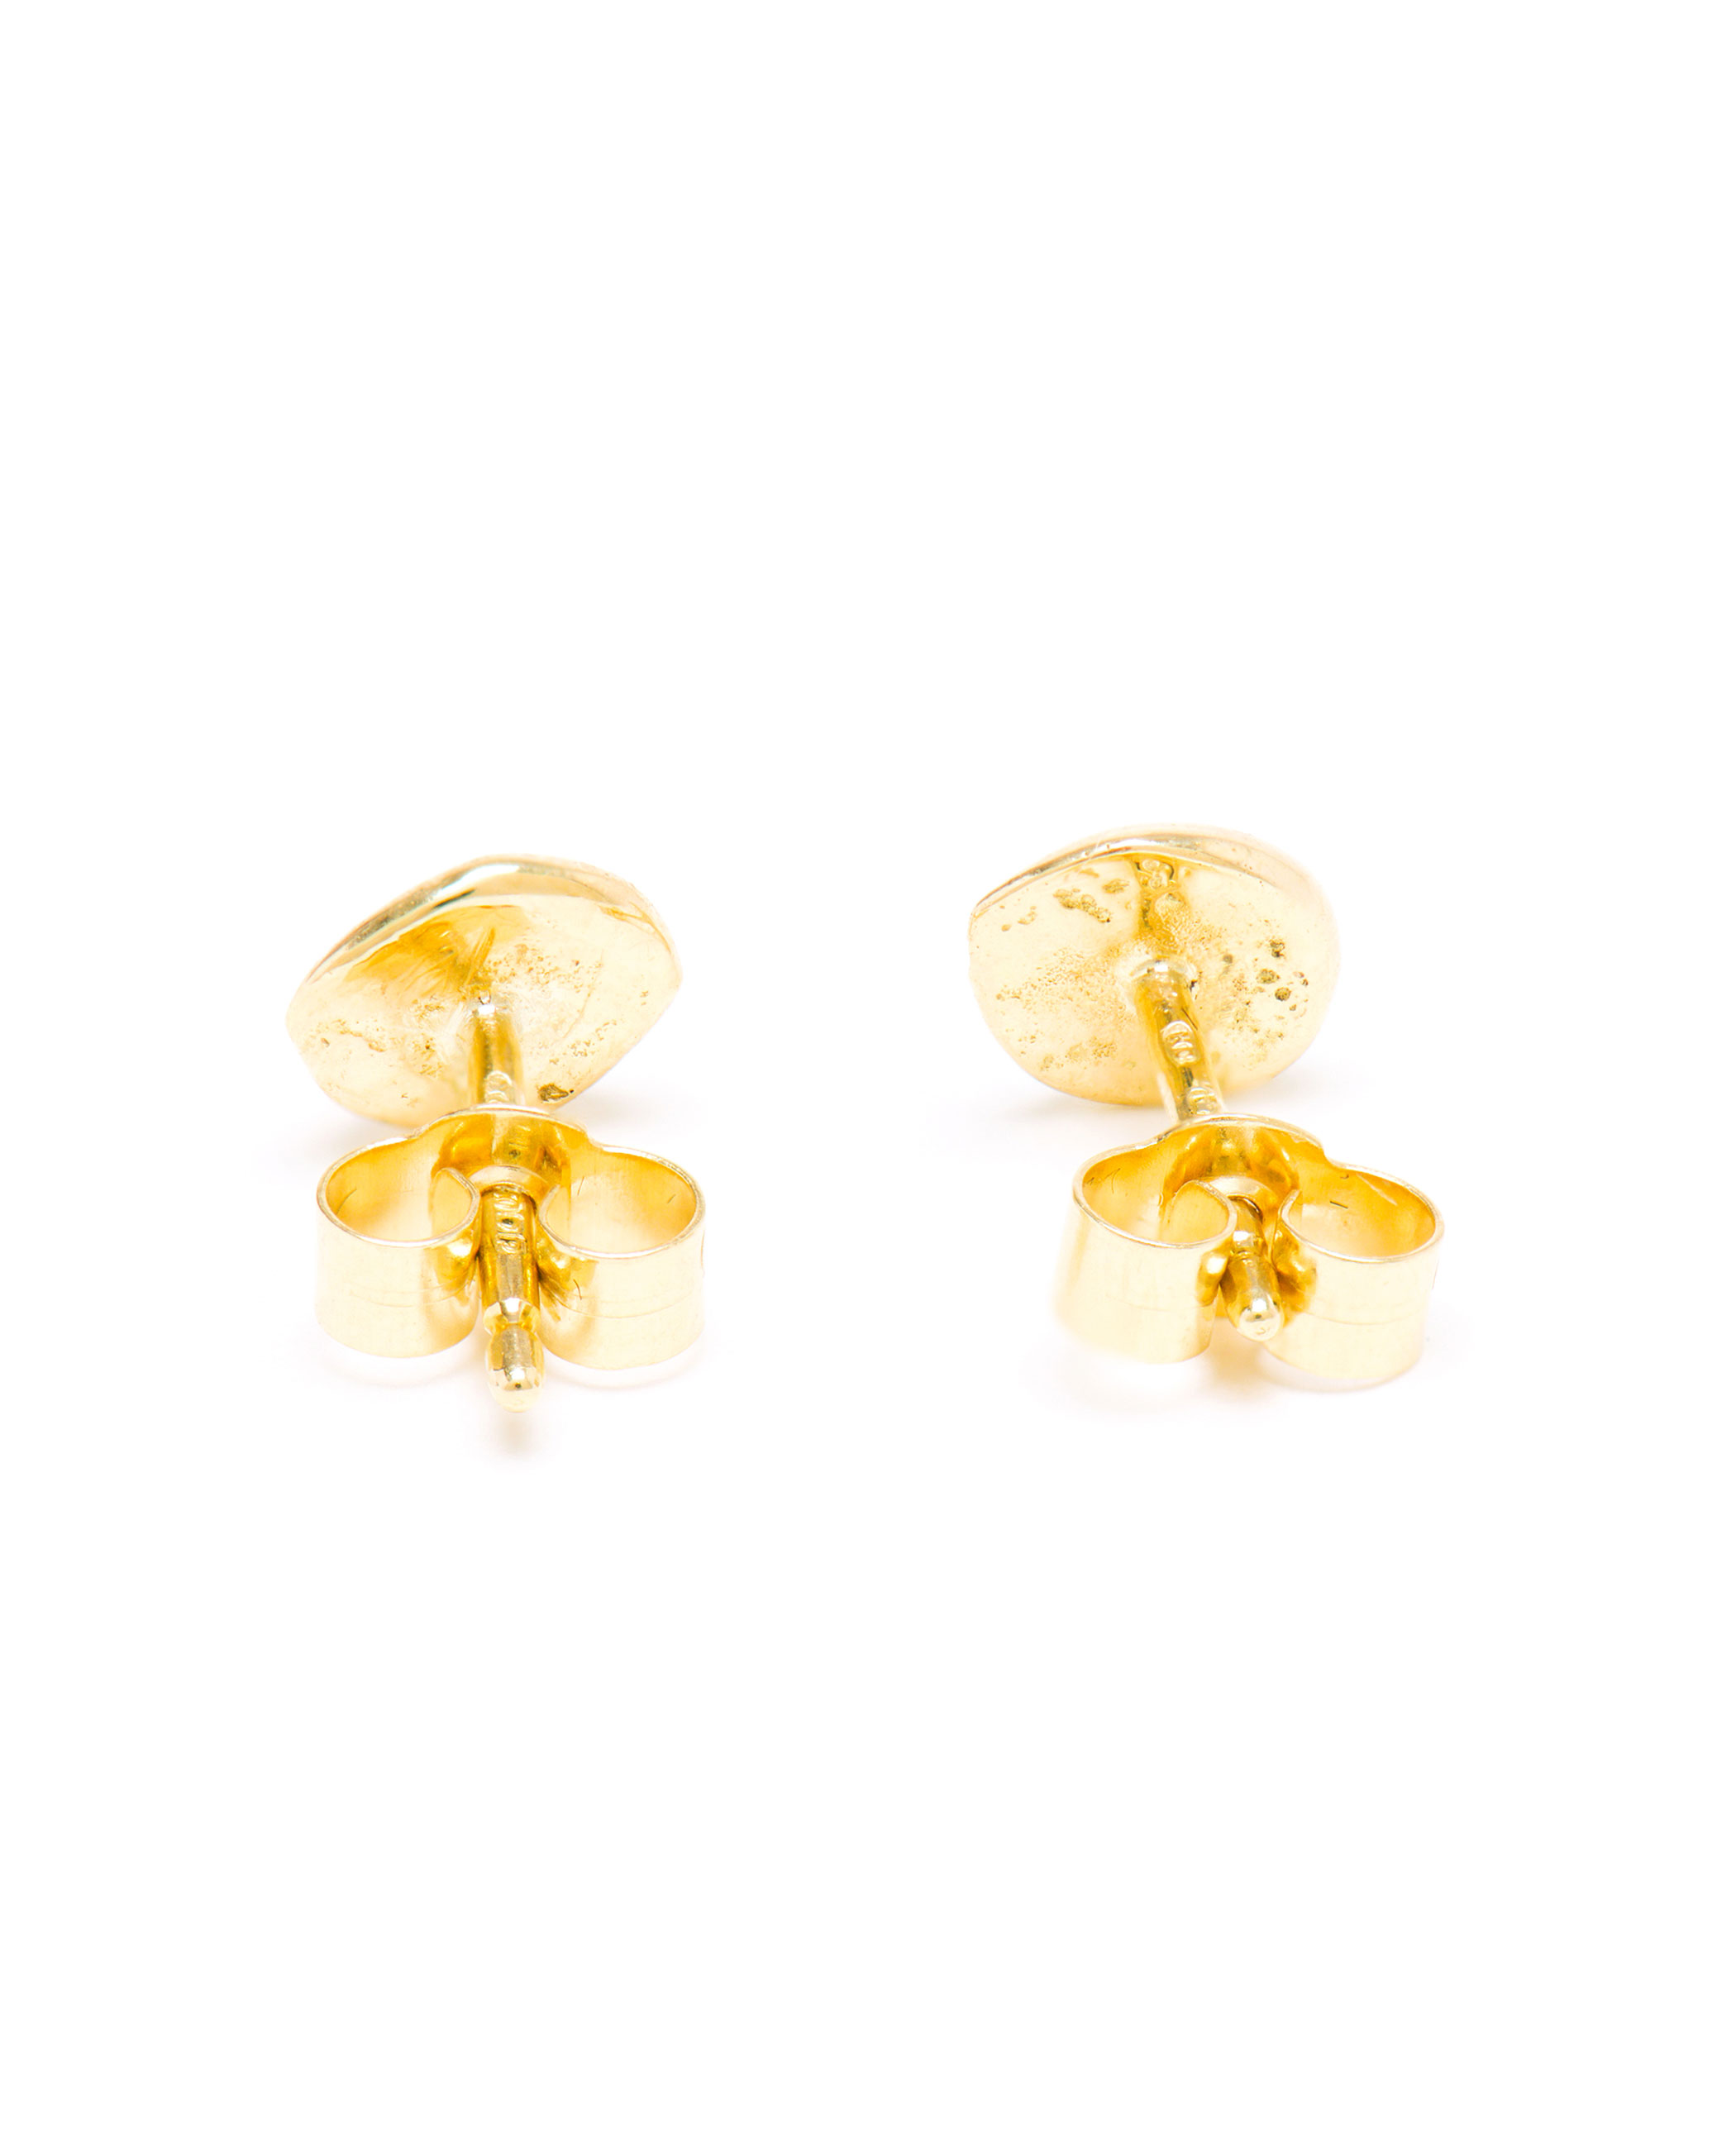 Large Nugget Studs with Diamonds